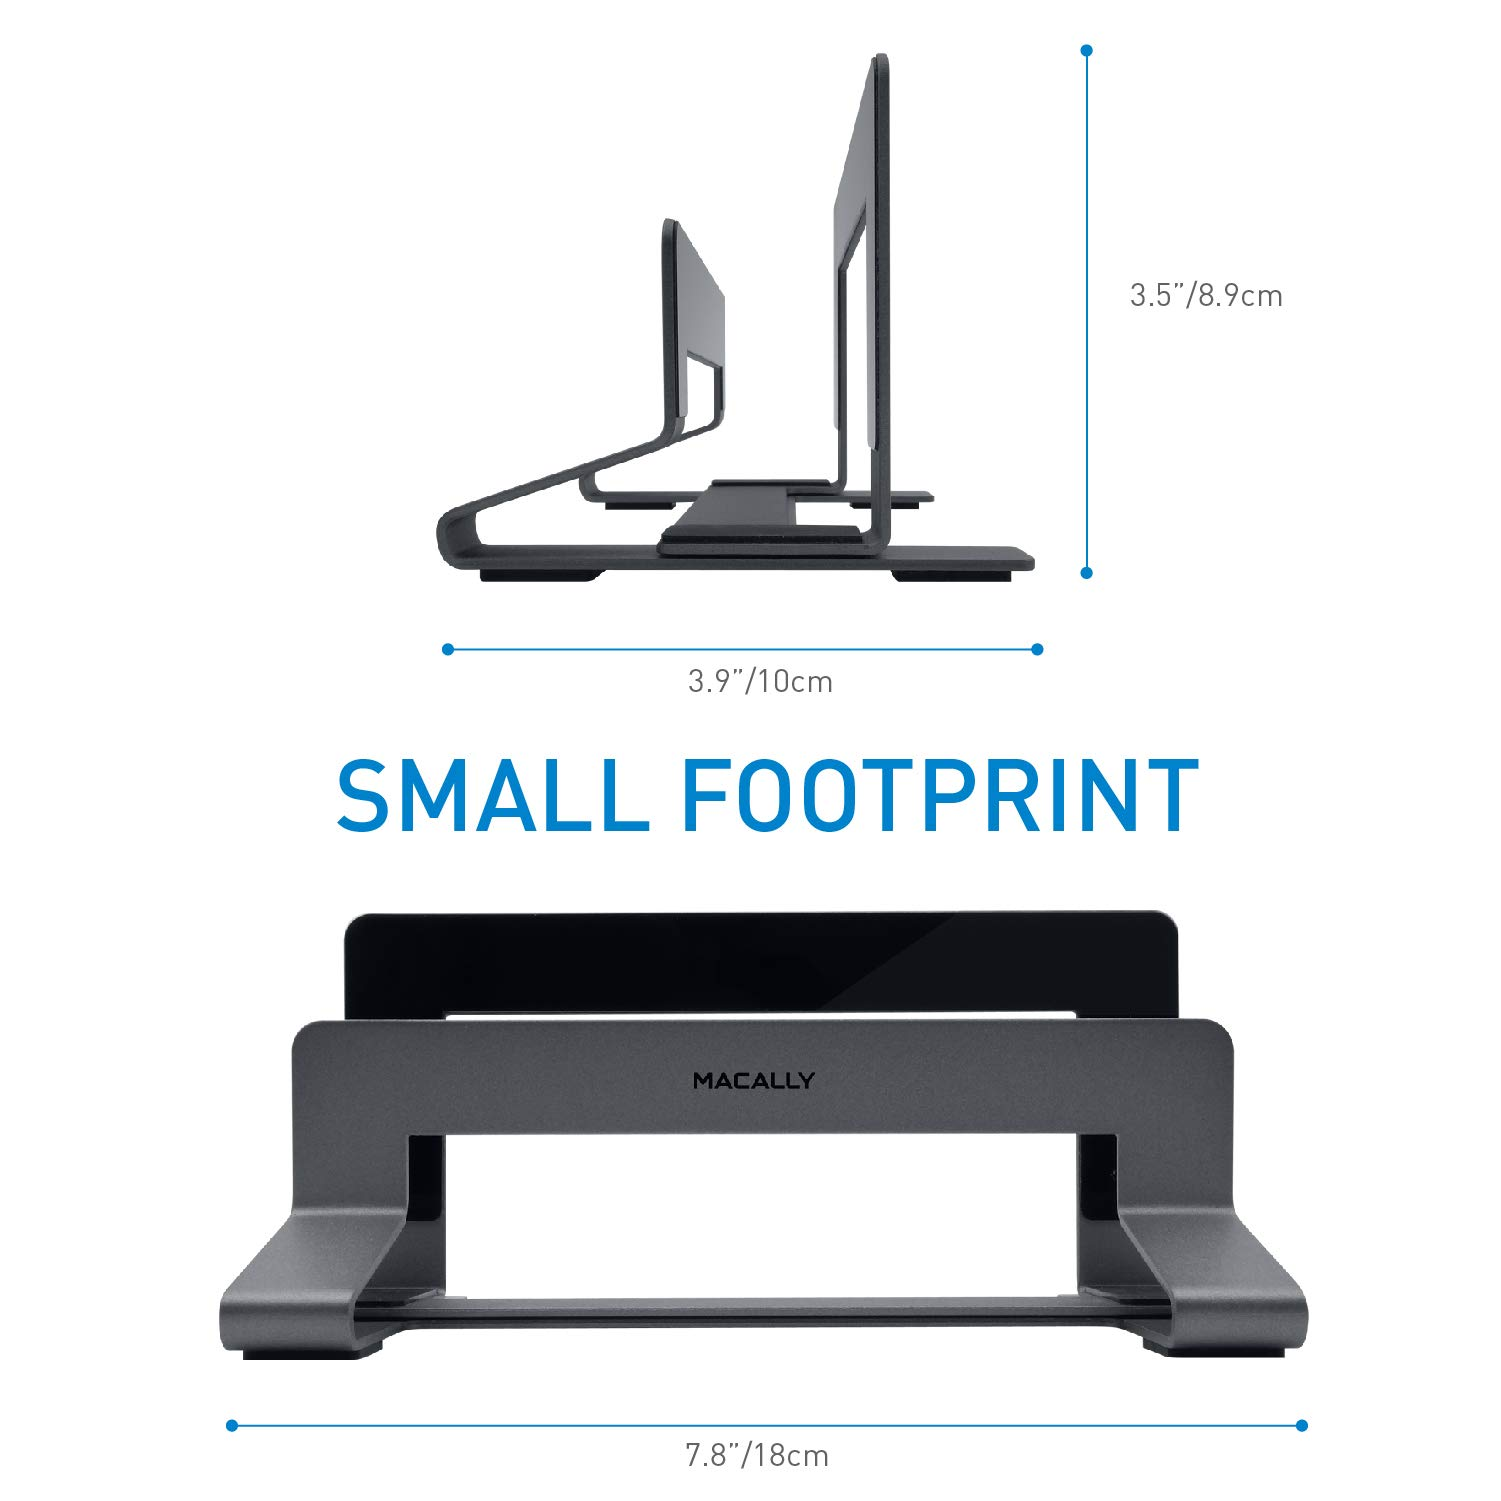 Macally Vertical Laptop Stand for Desk Space - Adjustable Vertical Stand Cradle - Laptop Holder - Apple MacBook Pro Air/Asus Chromebook Flip Samsung Notebook 9 Lenovo ThinkPad Dell XPS Acer Switch by Macally (Image #9)